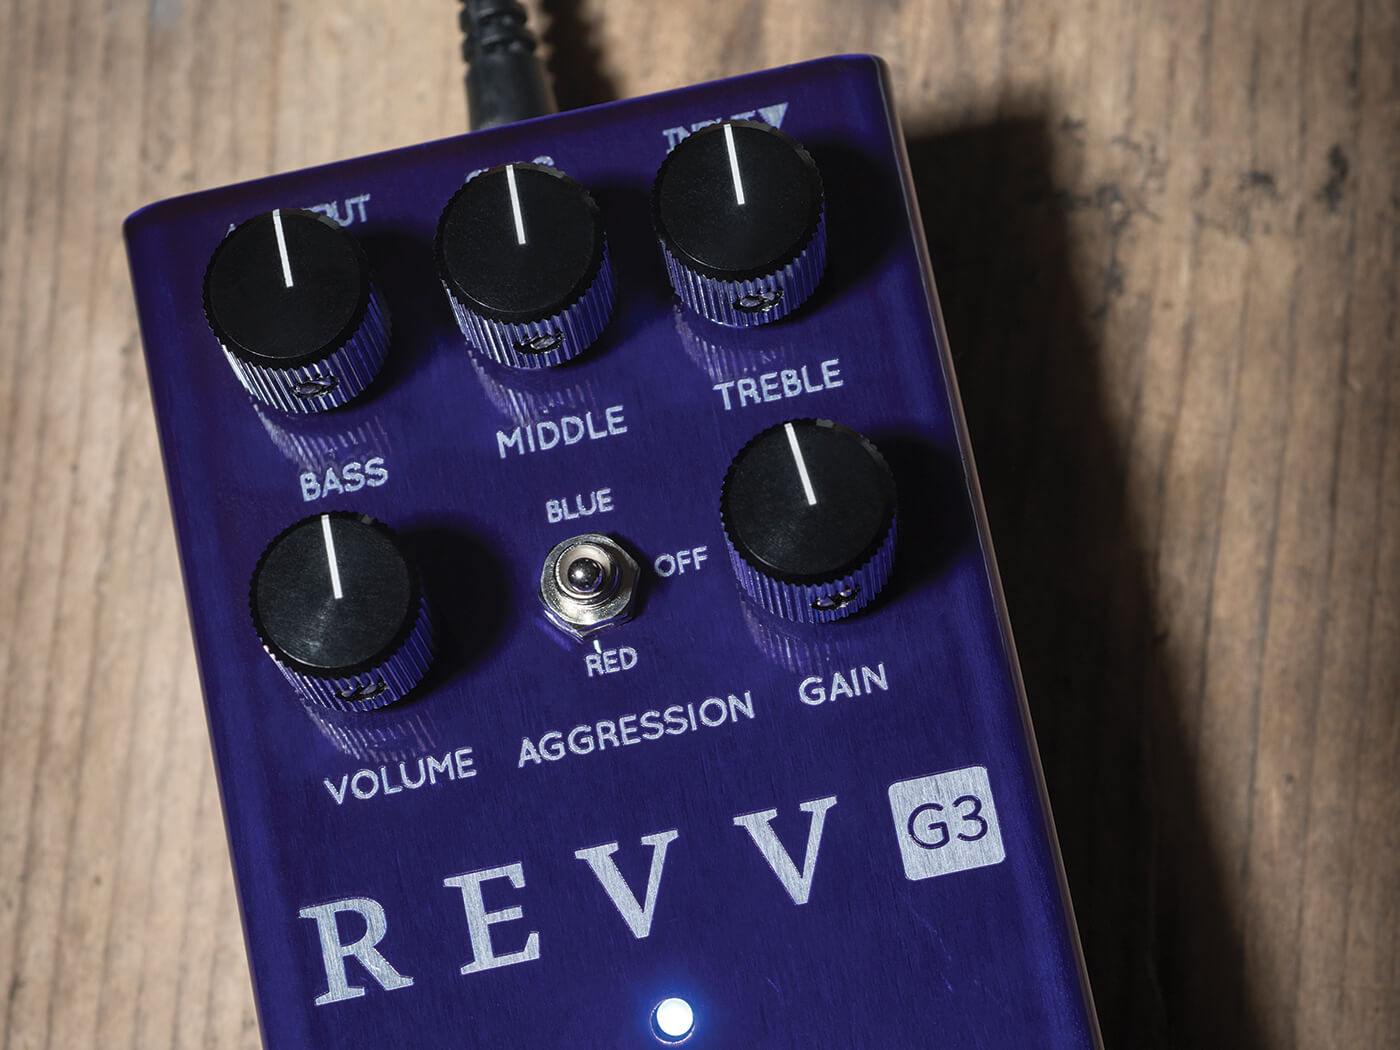 revv amplification g3